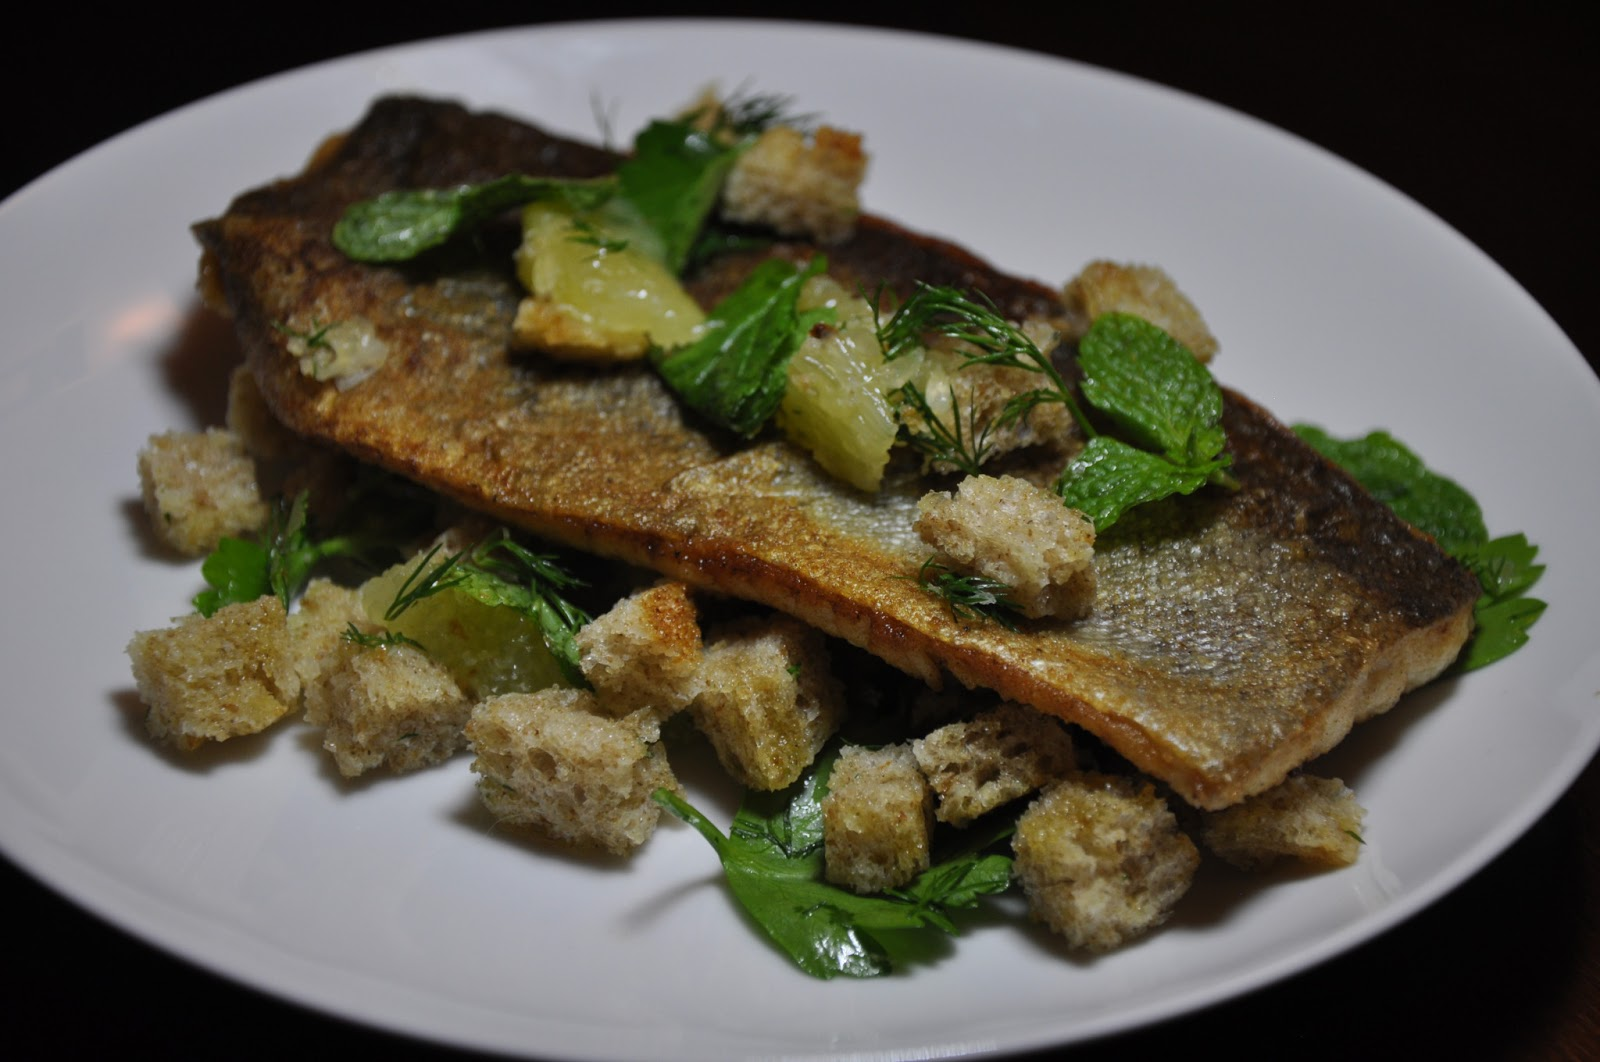 Slice of Rice: Pan-fried Trout with Lemon and Herb Stuffing